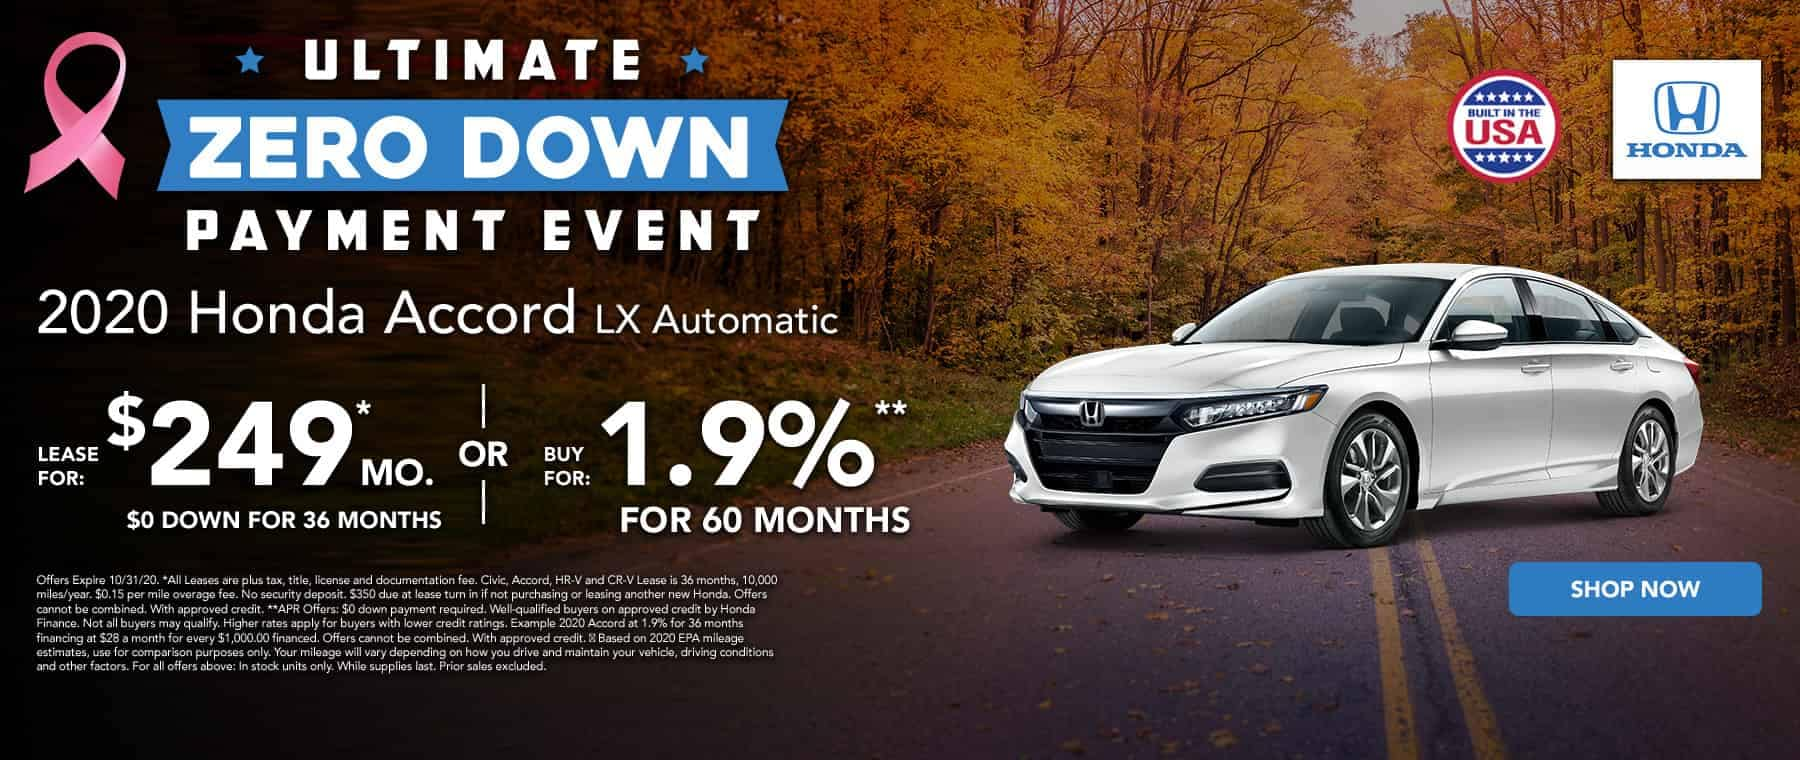 Lease a new Accord for $249 per month